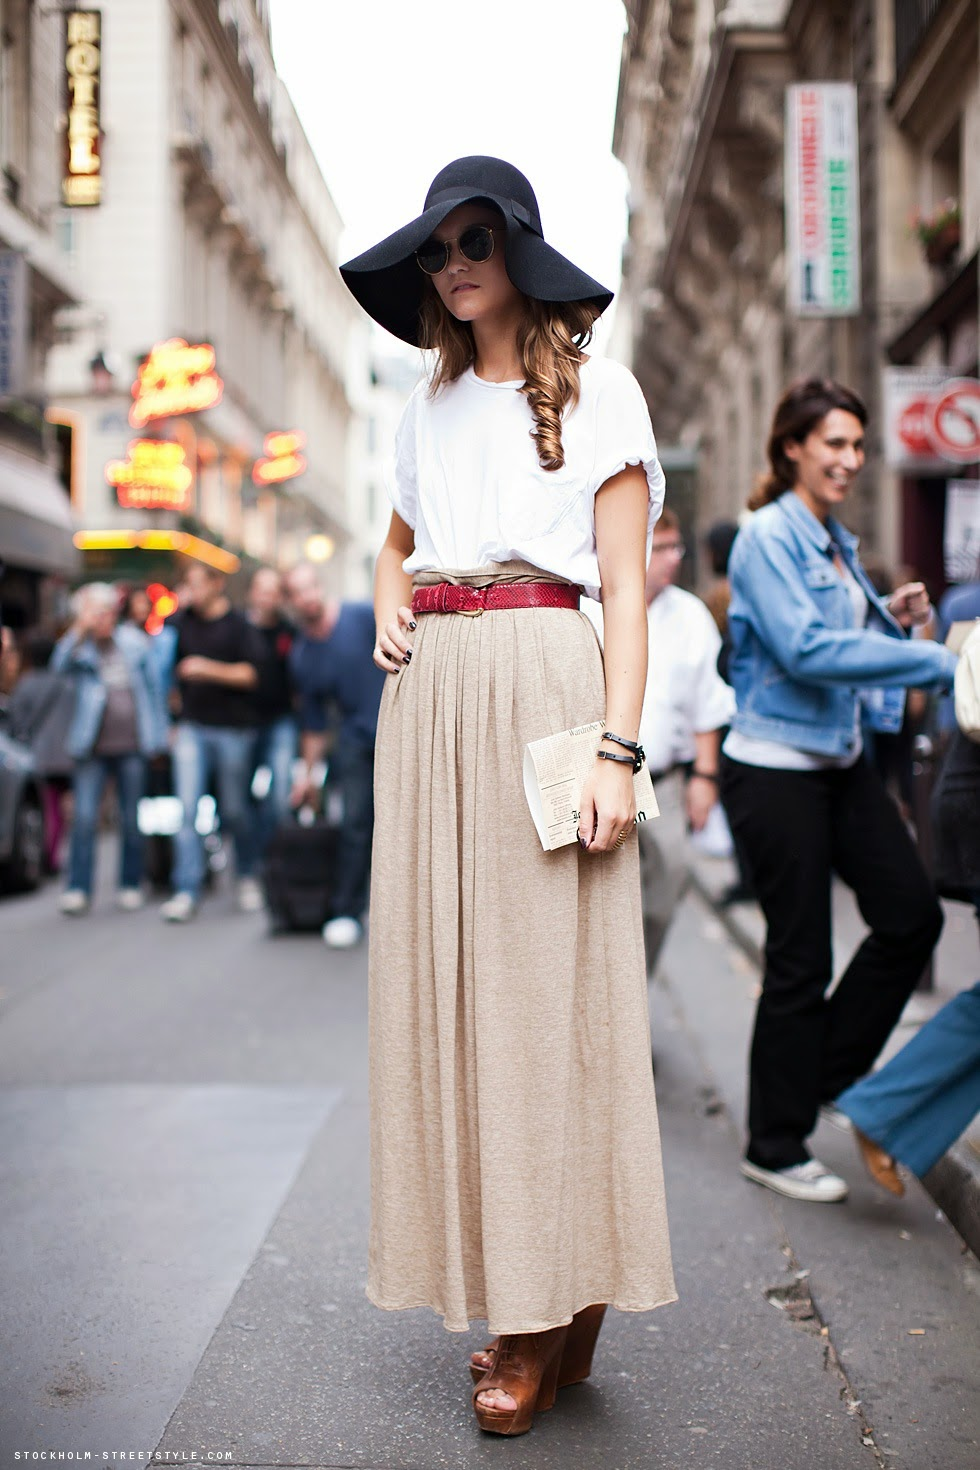 gonnelunghe abbinamenti gonne lunghe che arrivano alle caviglie come indossare le gonne lunghe abbinamenti gonne lunghe how to wear long skirt fashion blogger italiane colorblock by felym blog di moda di mariafelicia magno fashion blogger italiane milano mariafelicia magno fashion blogger di colorblock by felym come abbinare la gonna lunga gonne lunghe di tendenza per la primavera estate 2014